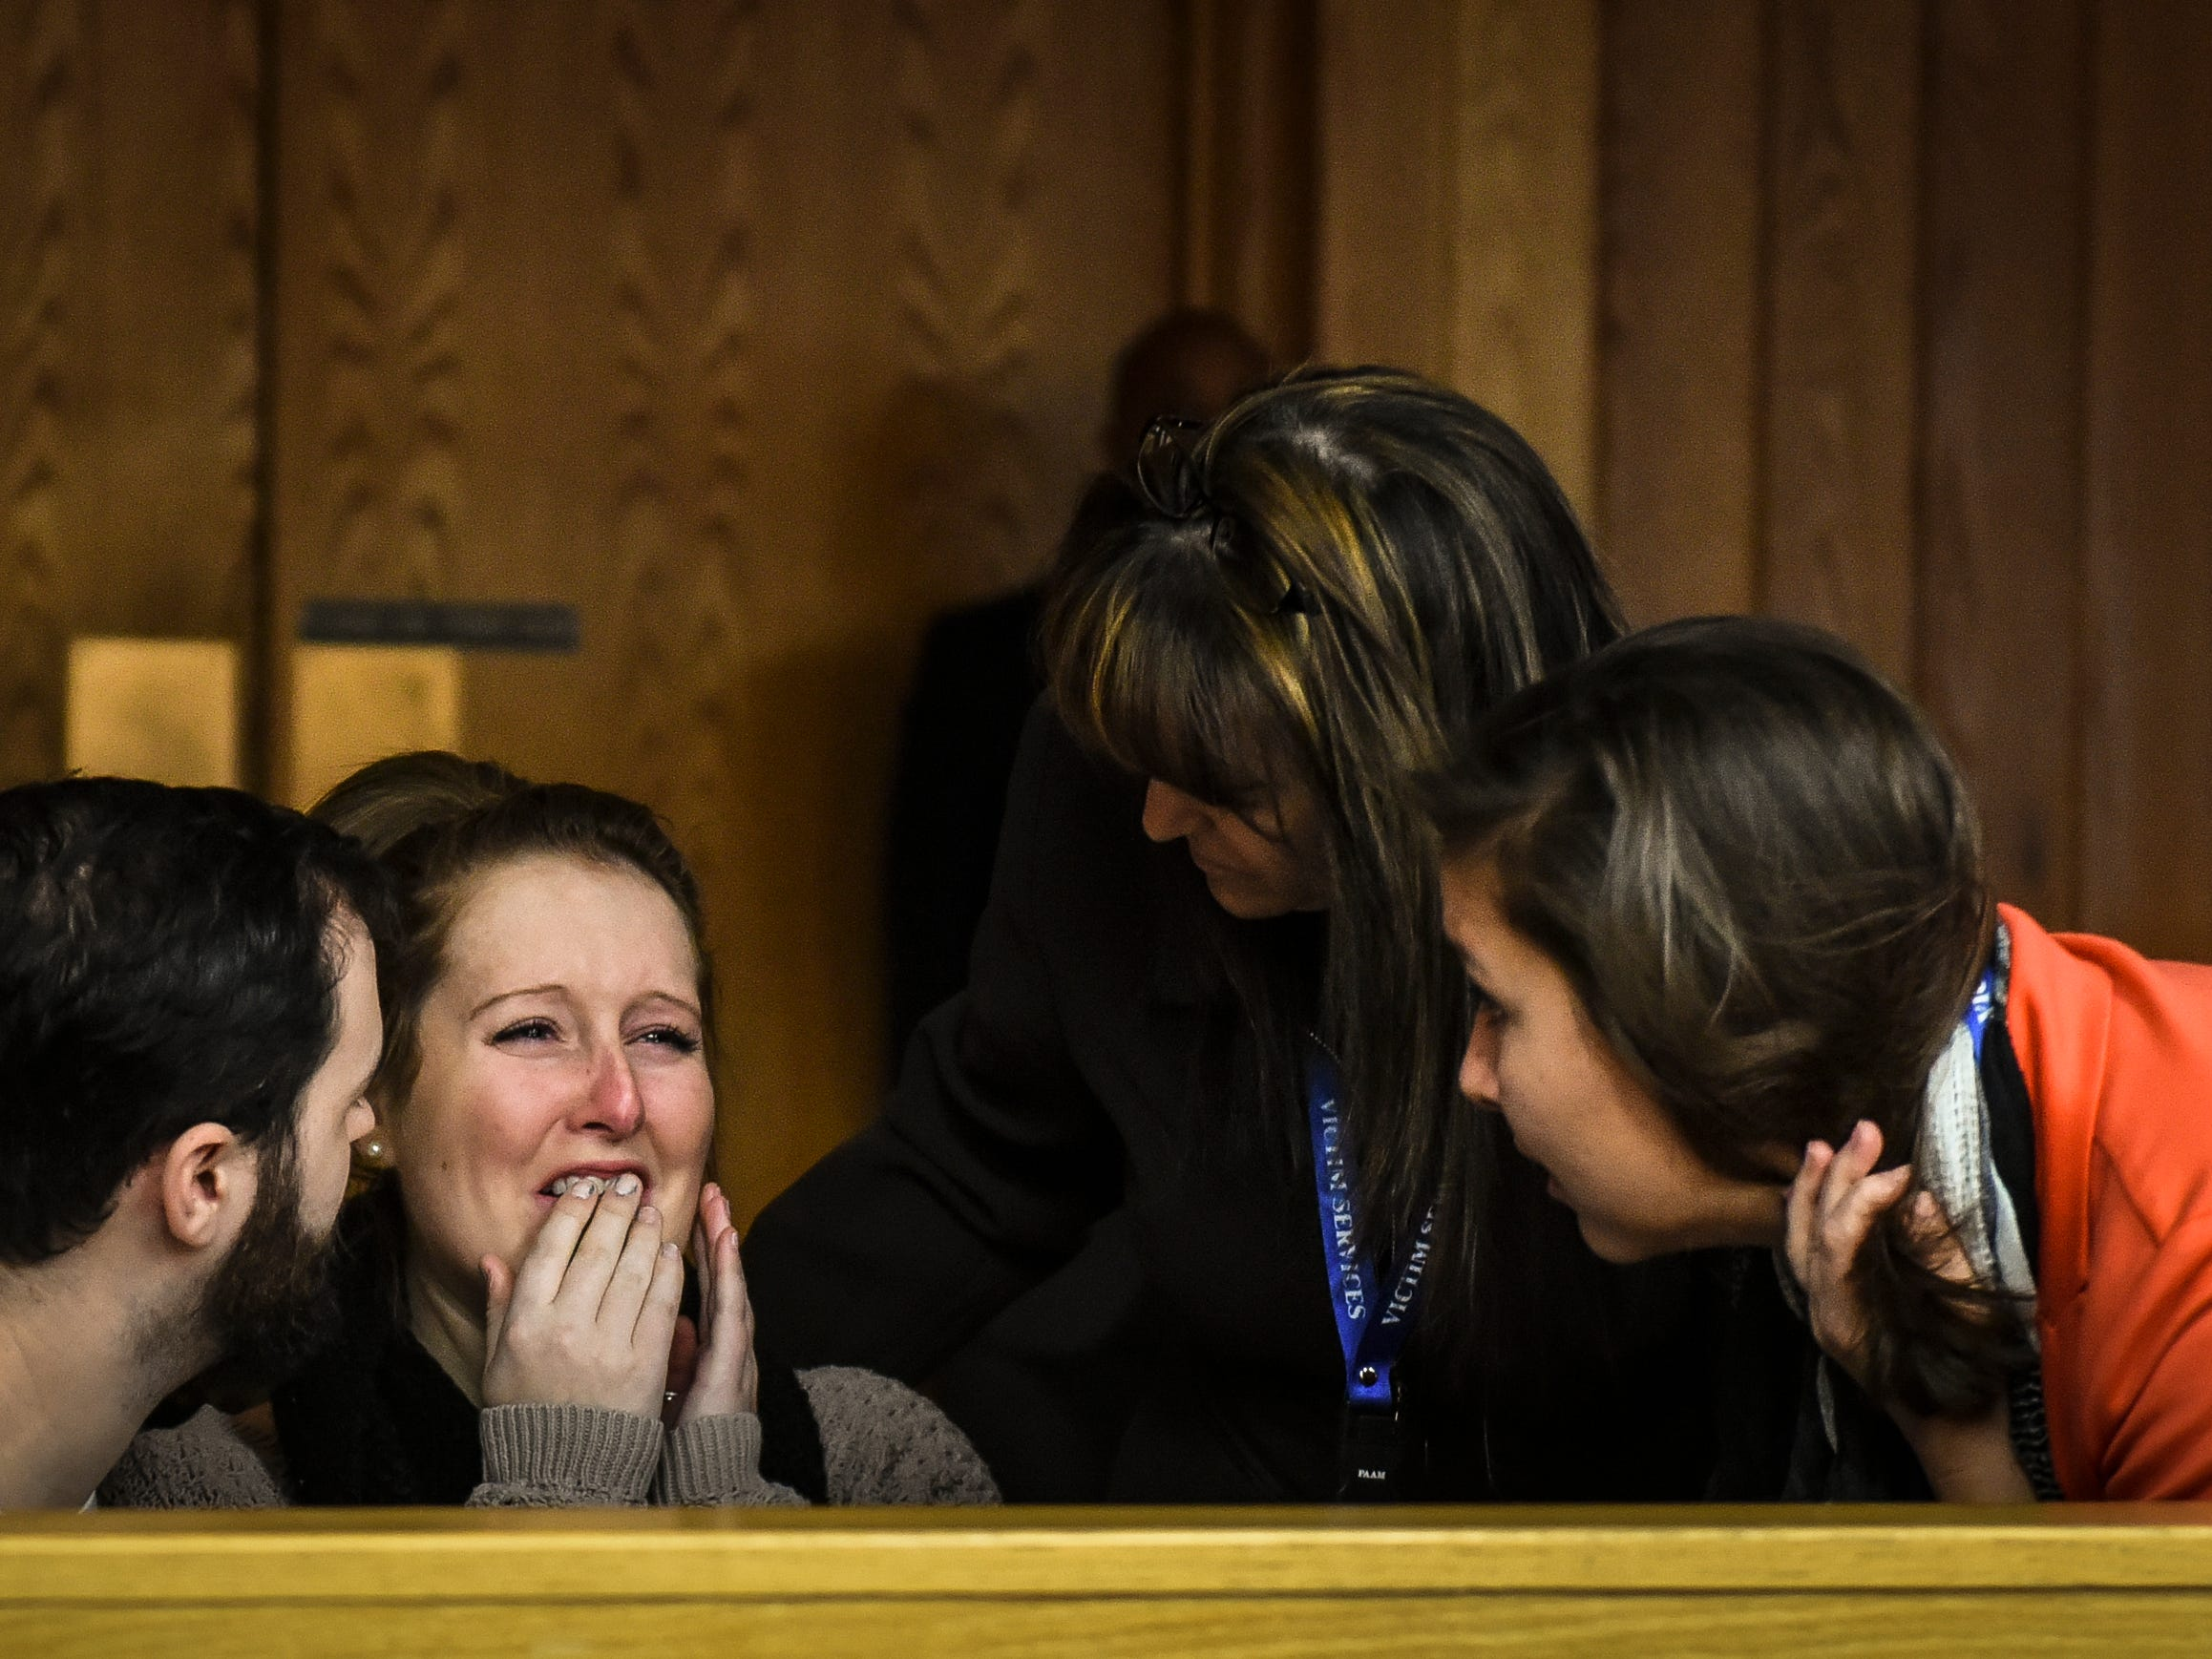 People react after an upset father tried to attack Larry Nassar after two of his daughters gave their victim impact statements Friday, Feb. 2, 2018, in Eaton County Circuit Court in Charlotte, Mich.